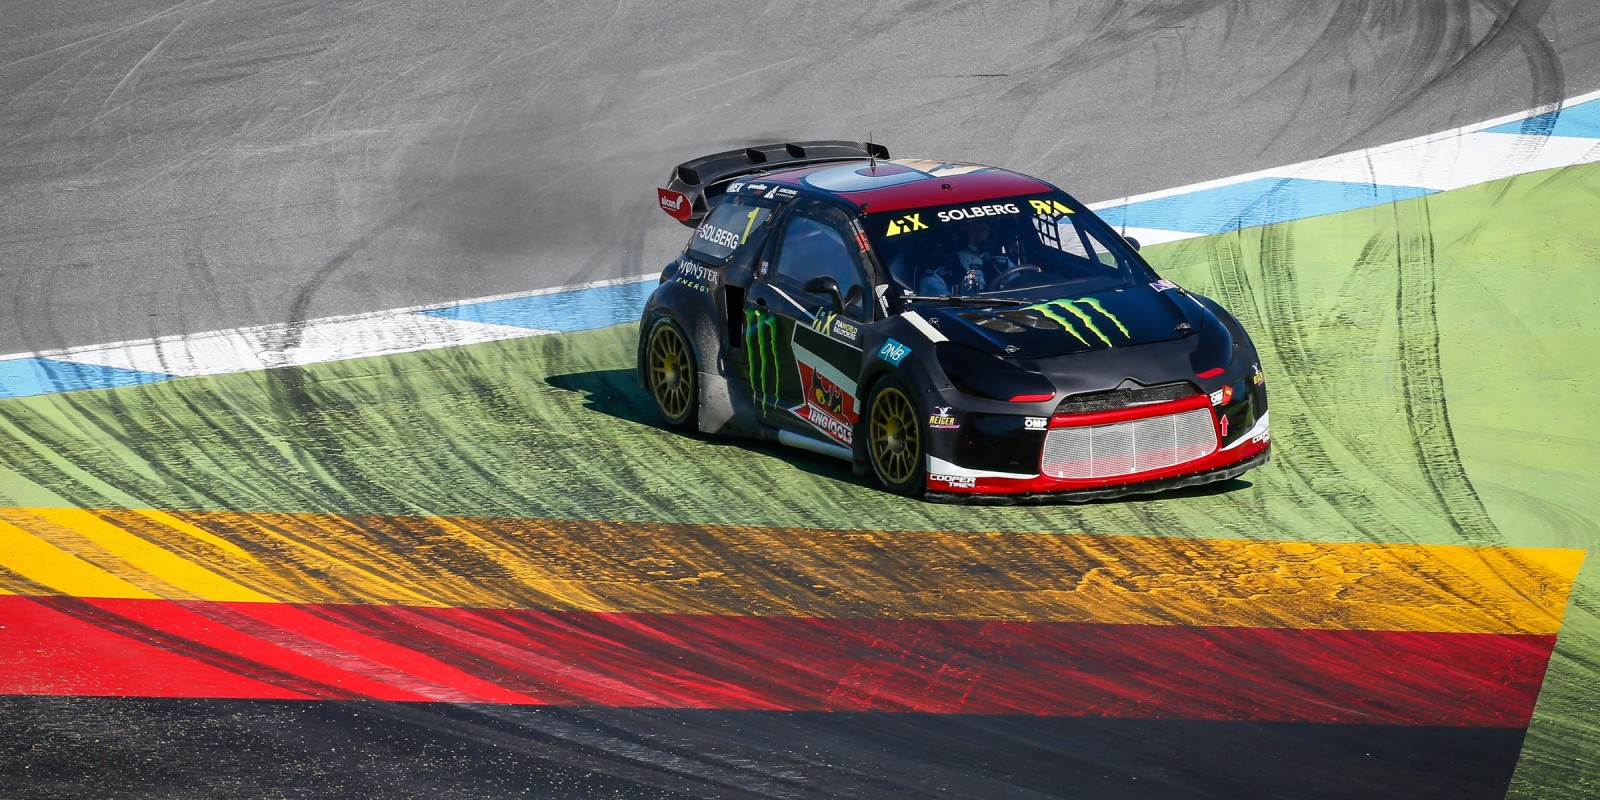 Images from round two of the FIA World Rallycross Championship hosted in Germany